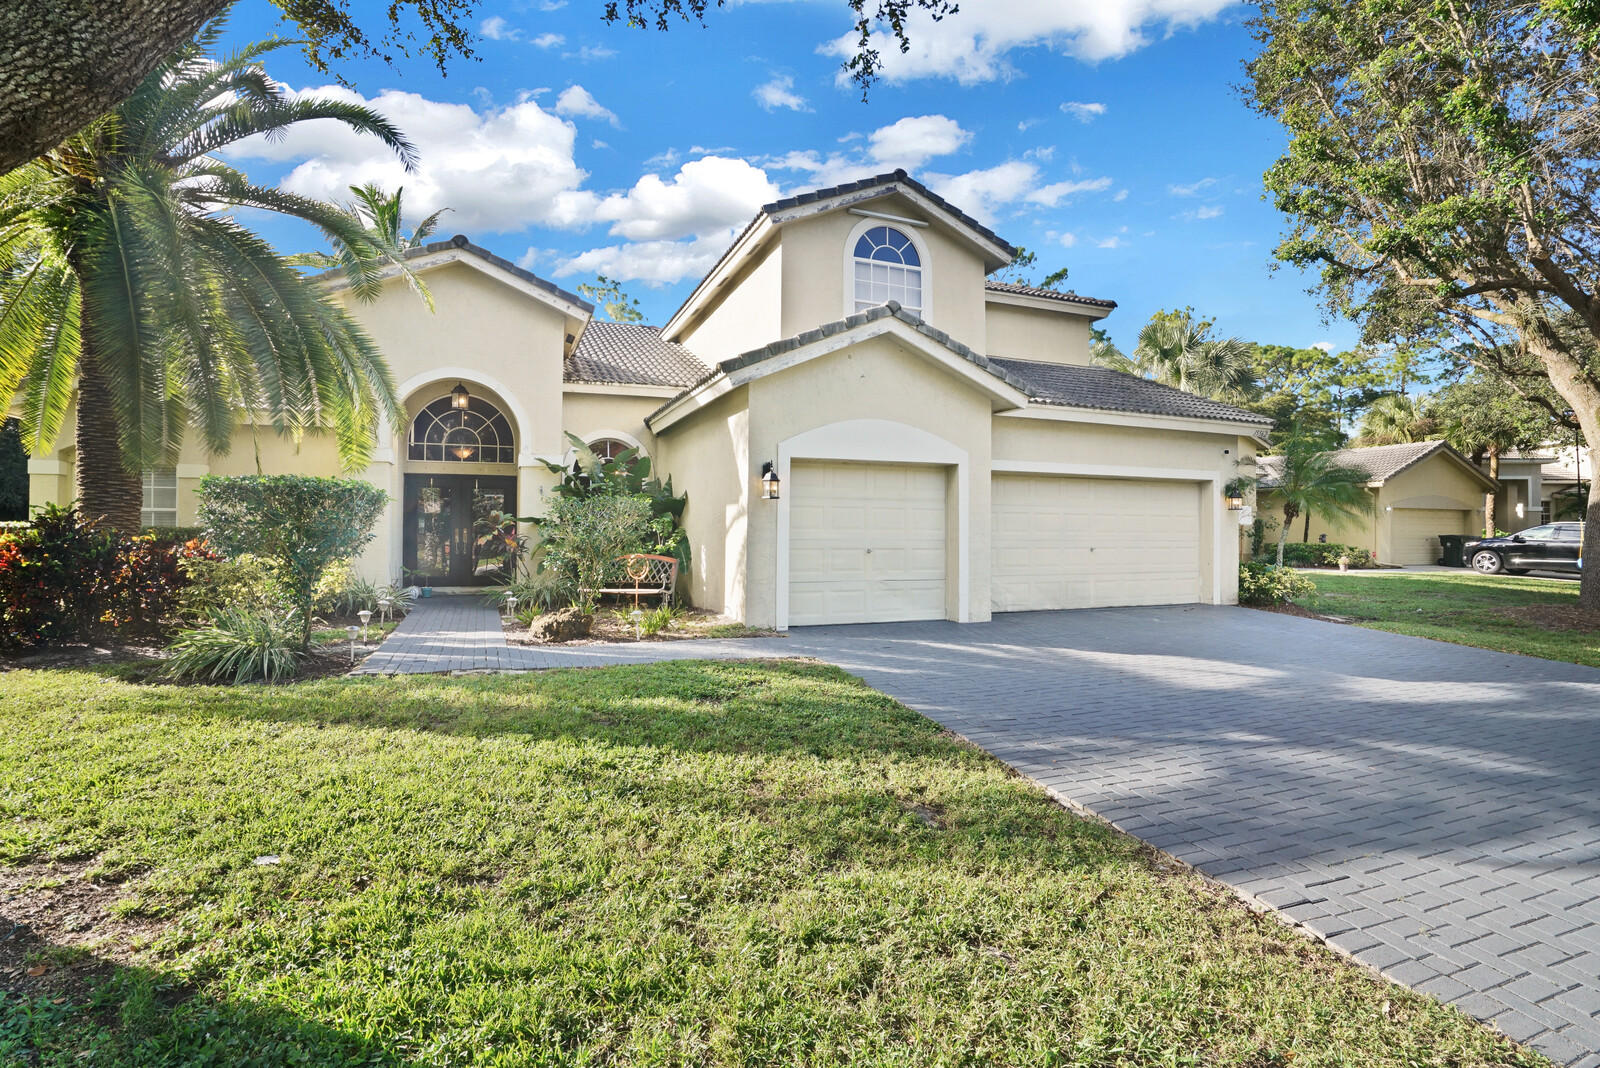 Home for sale in Pine Trace Wellington Florida